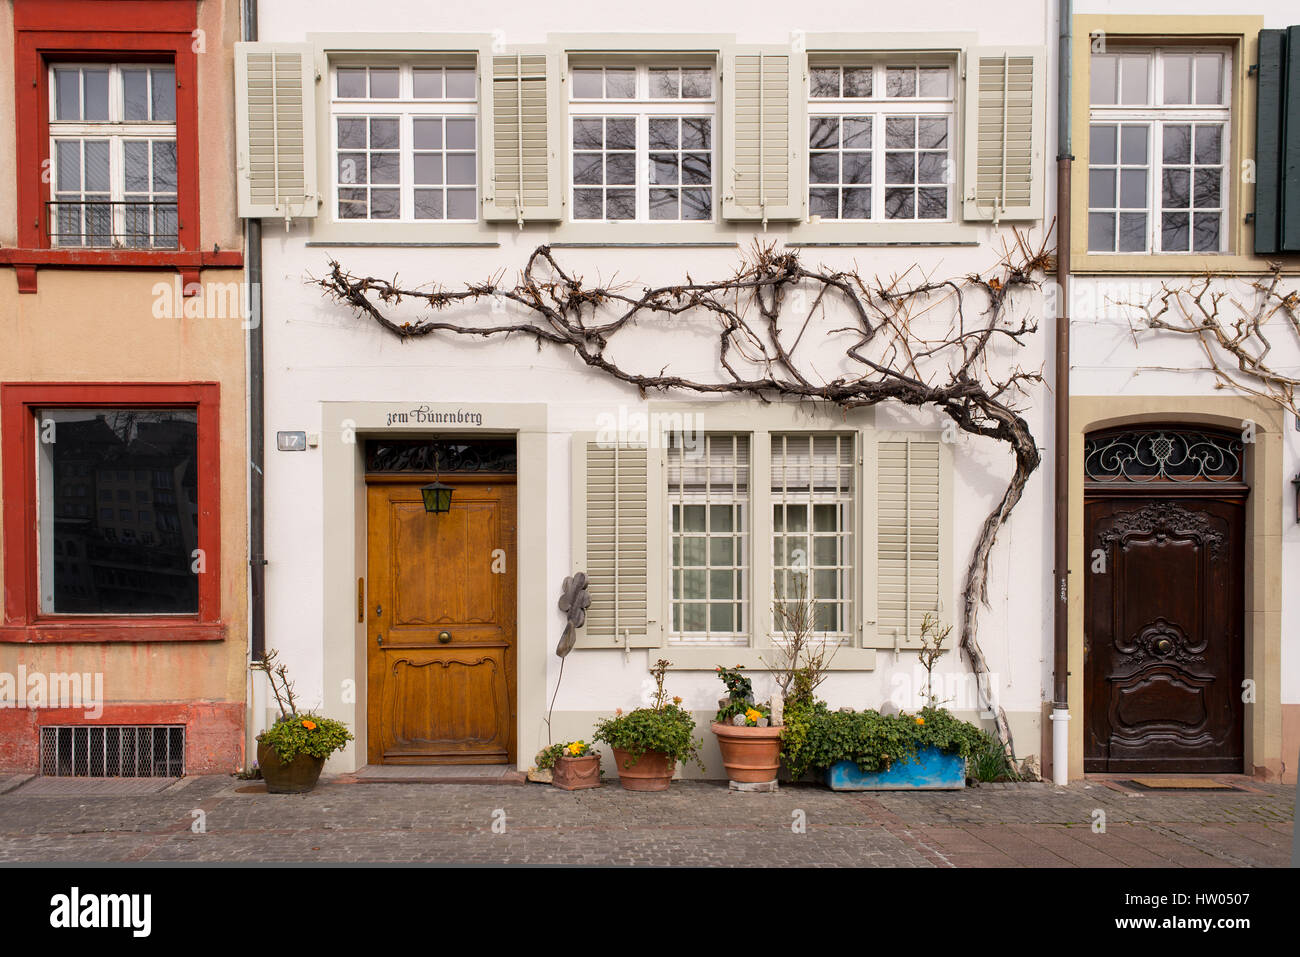 Facade of old medieval houses with wooden doors in Basel old town, Altstadt Grossbasel, Switzerland. - Stock Image